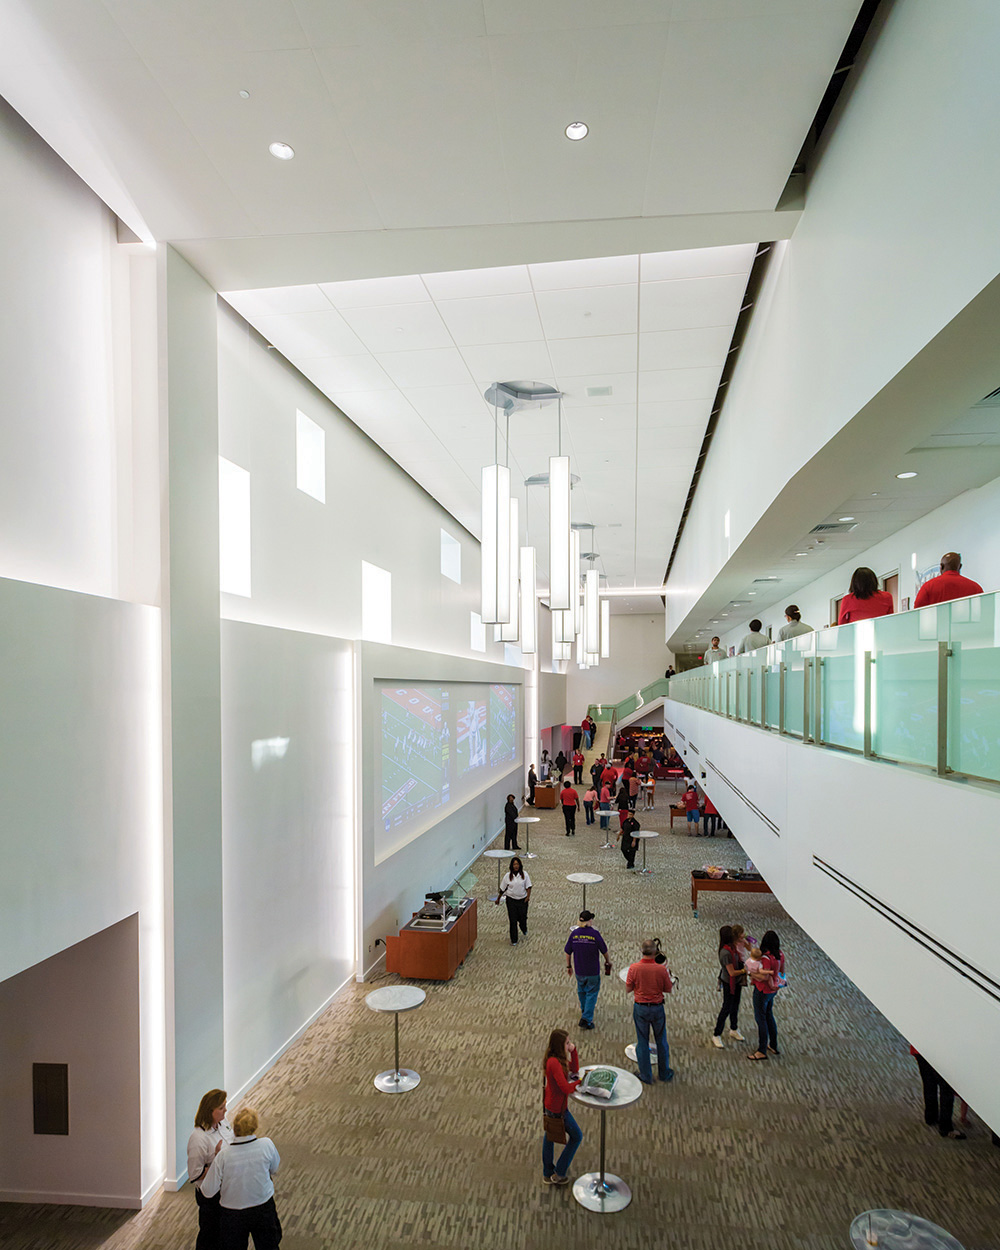 Parallel pendants in an education lighting application, mounted above a large campus sports arena lobby.